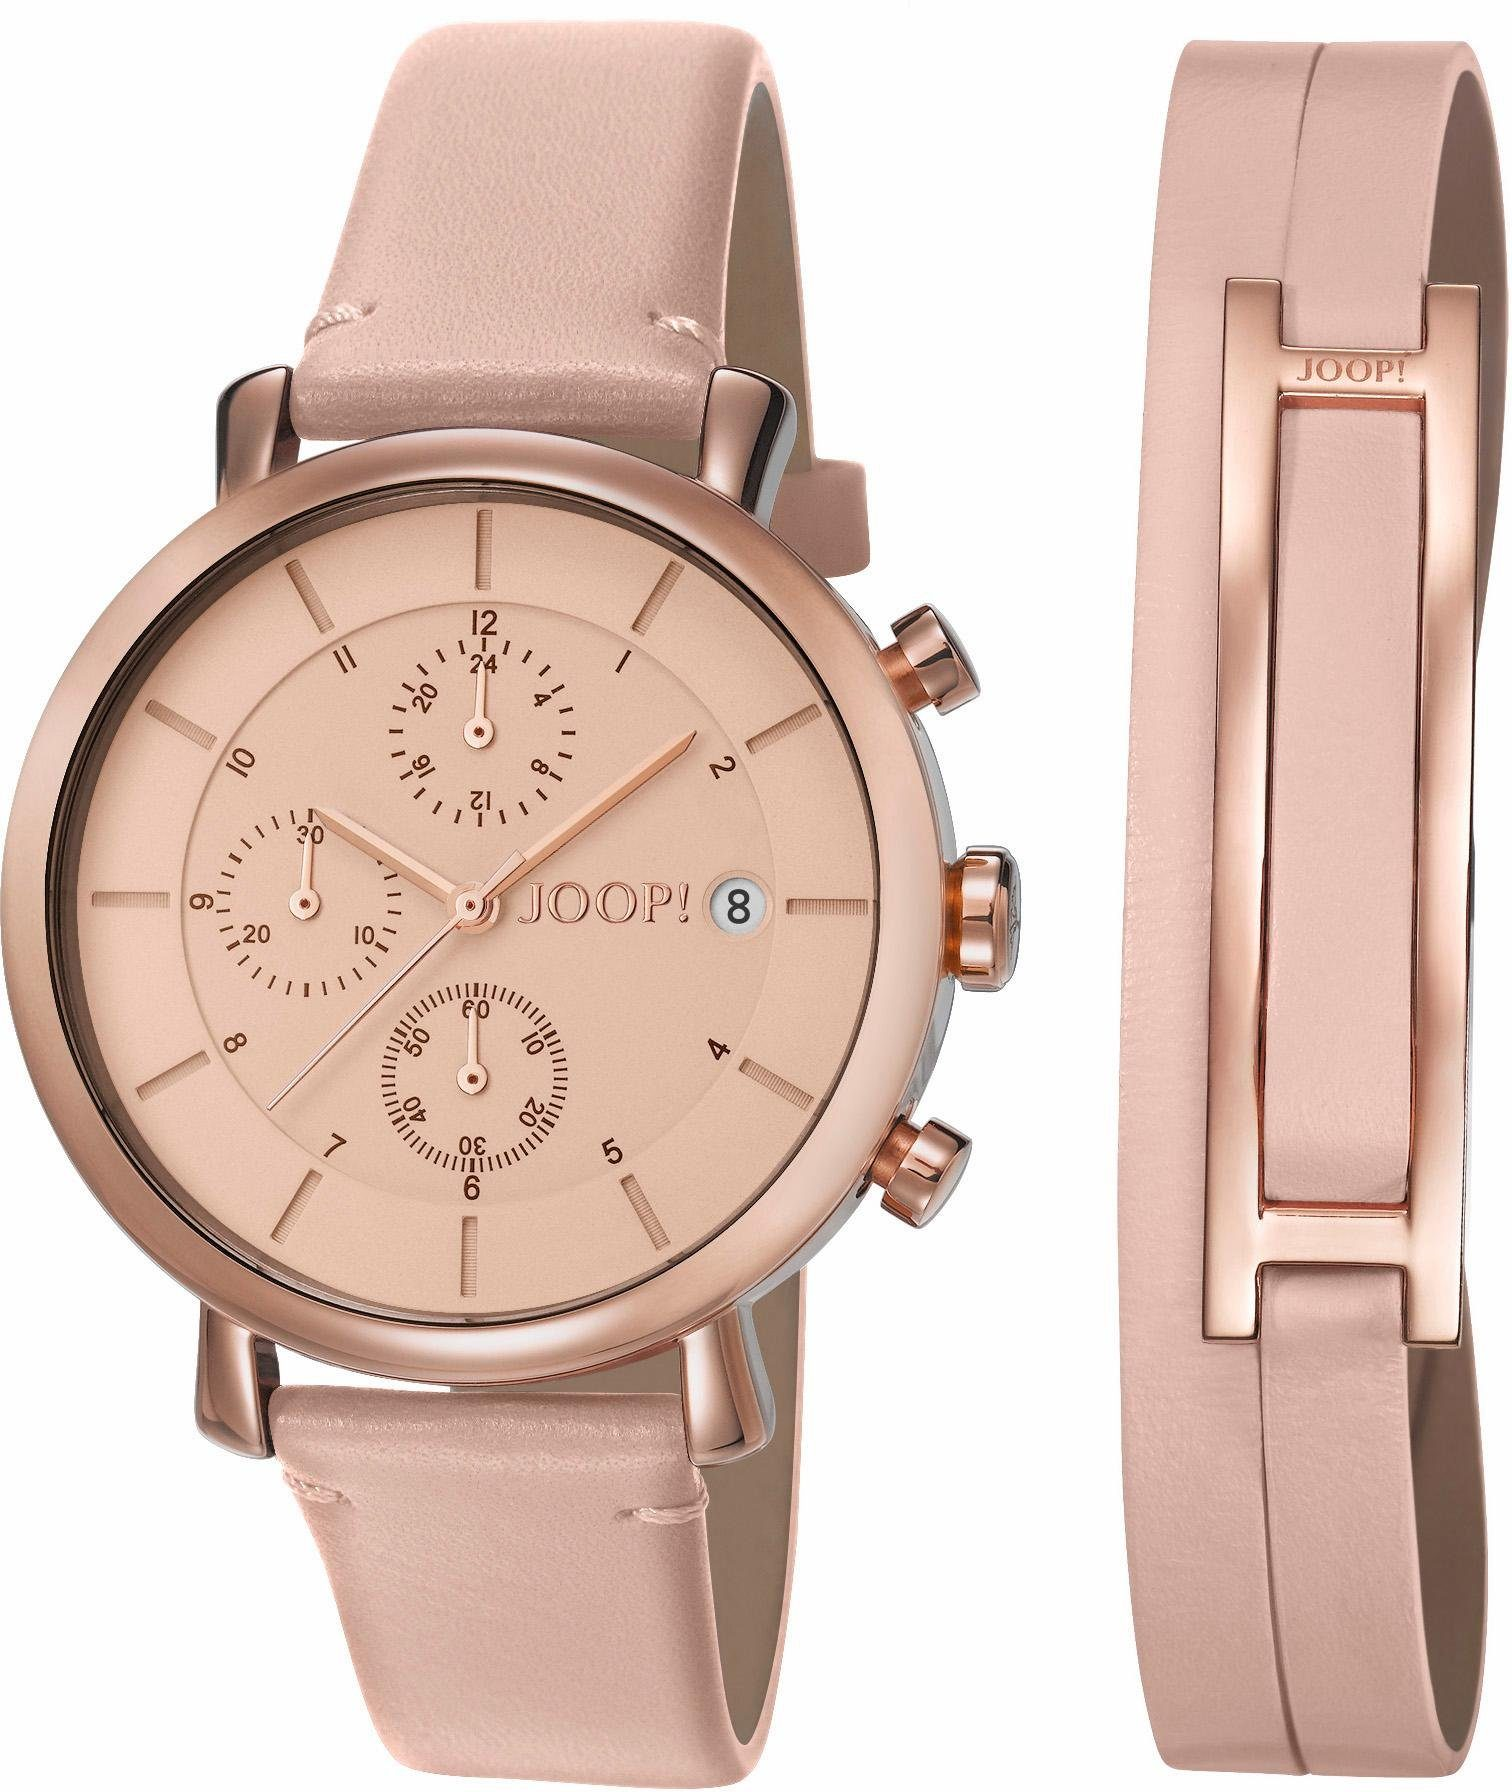 Joop! Chronograph »JP101772011« mit Wechselband (Set, 2 tlg.)